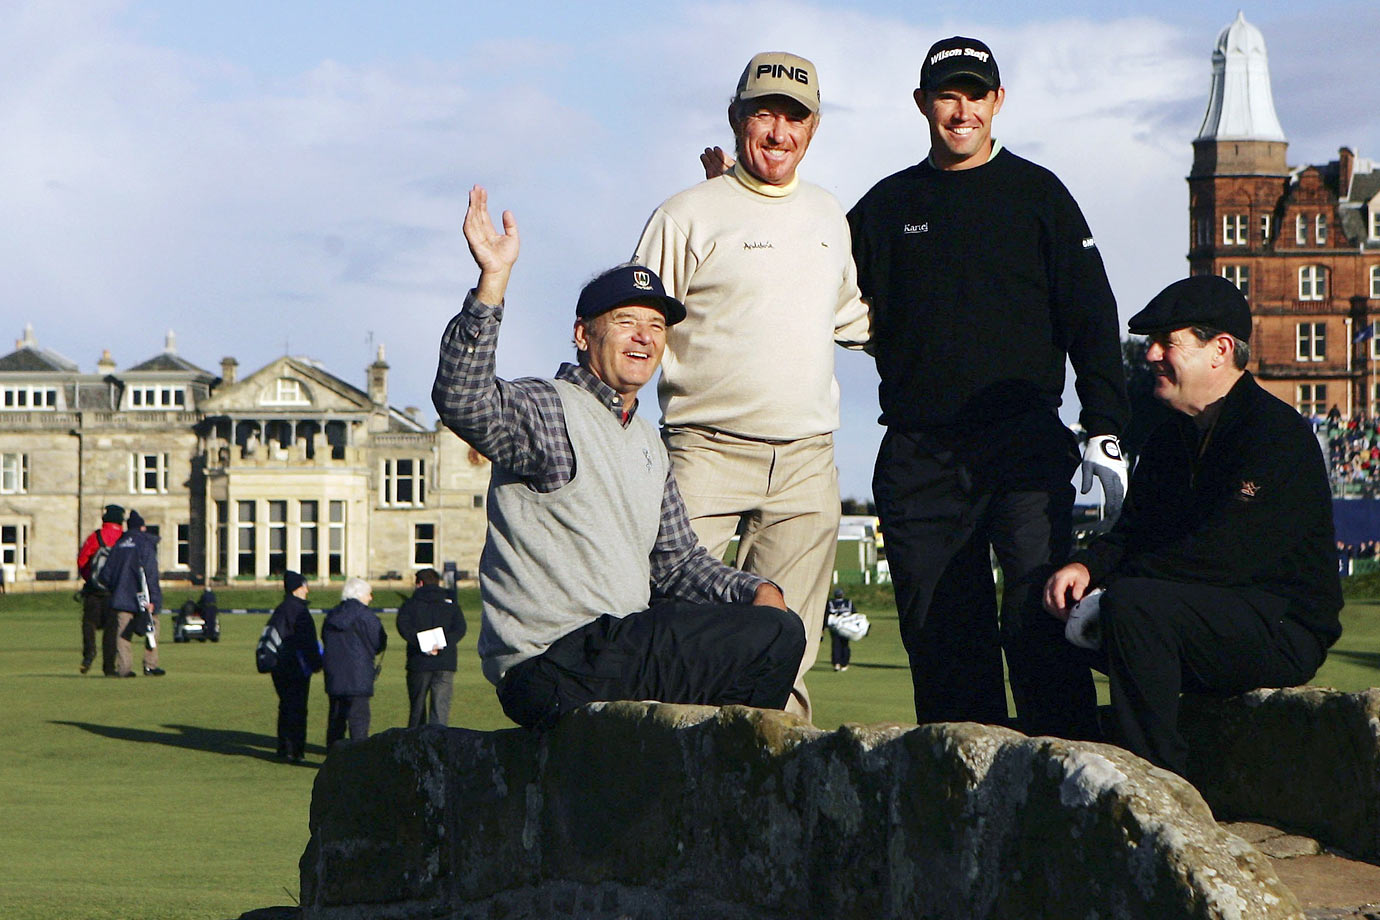 Bill Murray poses with Miguel Angel Jimenez, Padraig Harrington and JP McManus on the Swilkin Burn bridge during The Alfred Dunhill Links Championship at The Old Course on Oct. 6, 2006 in St. Andrews, Scotland.